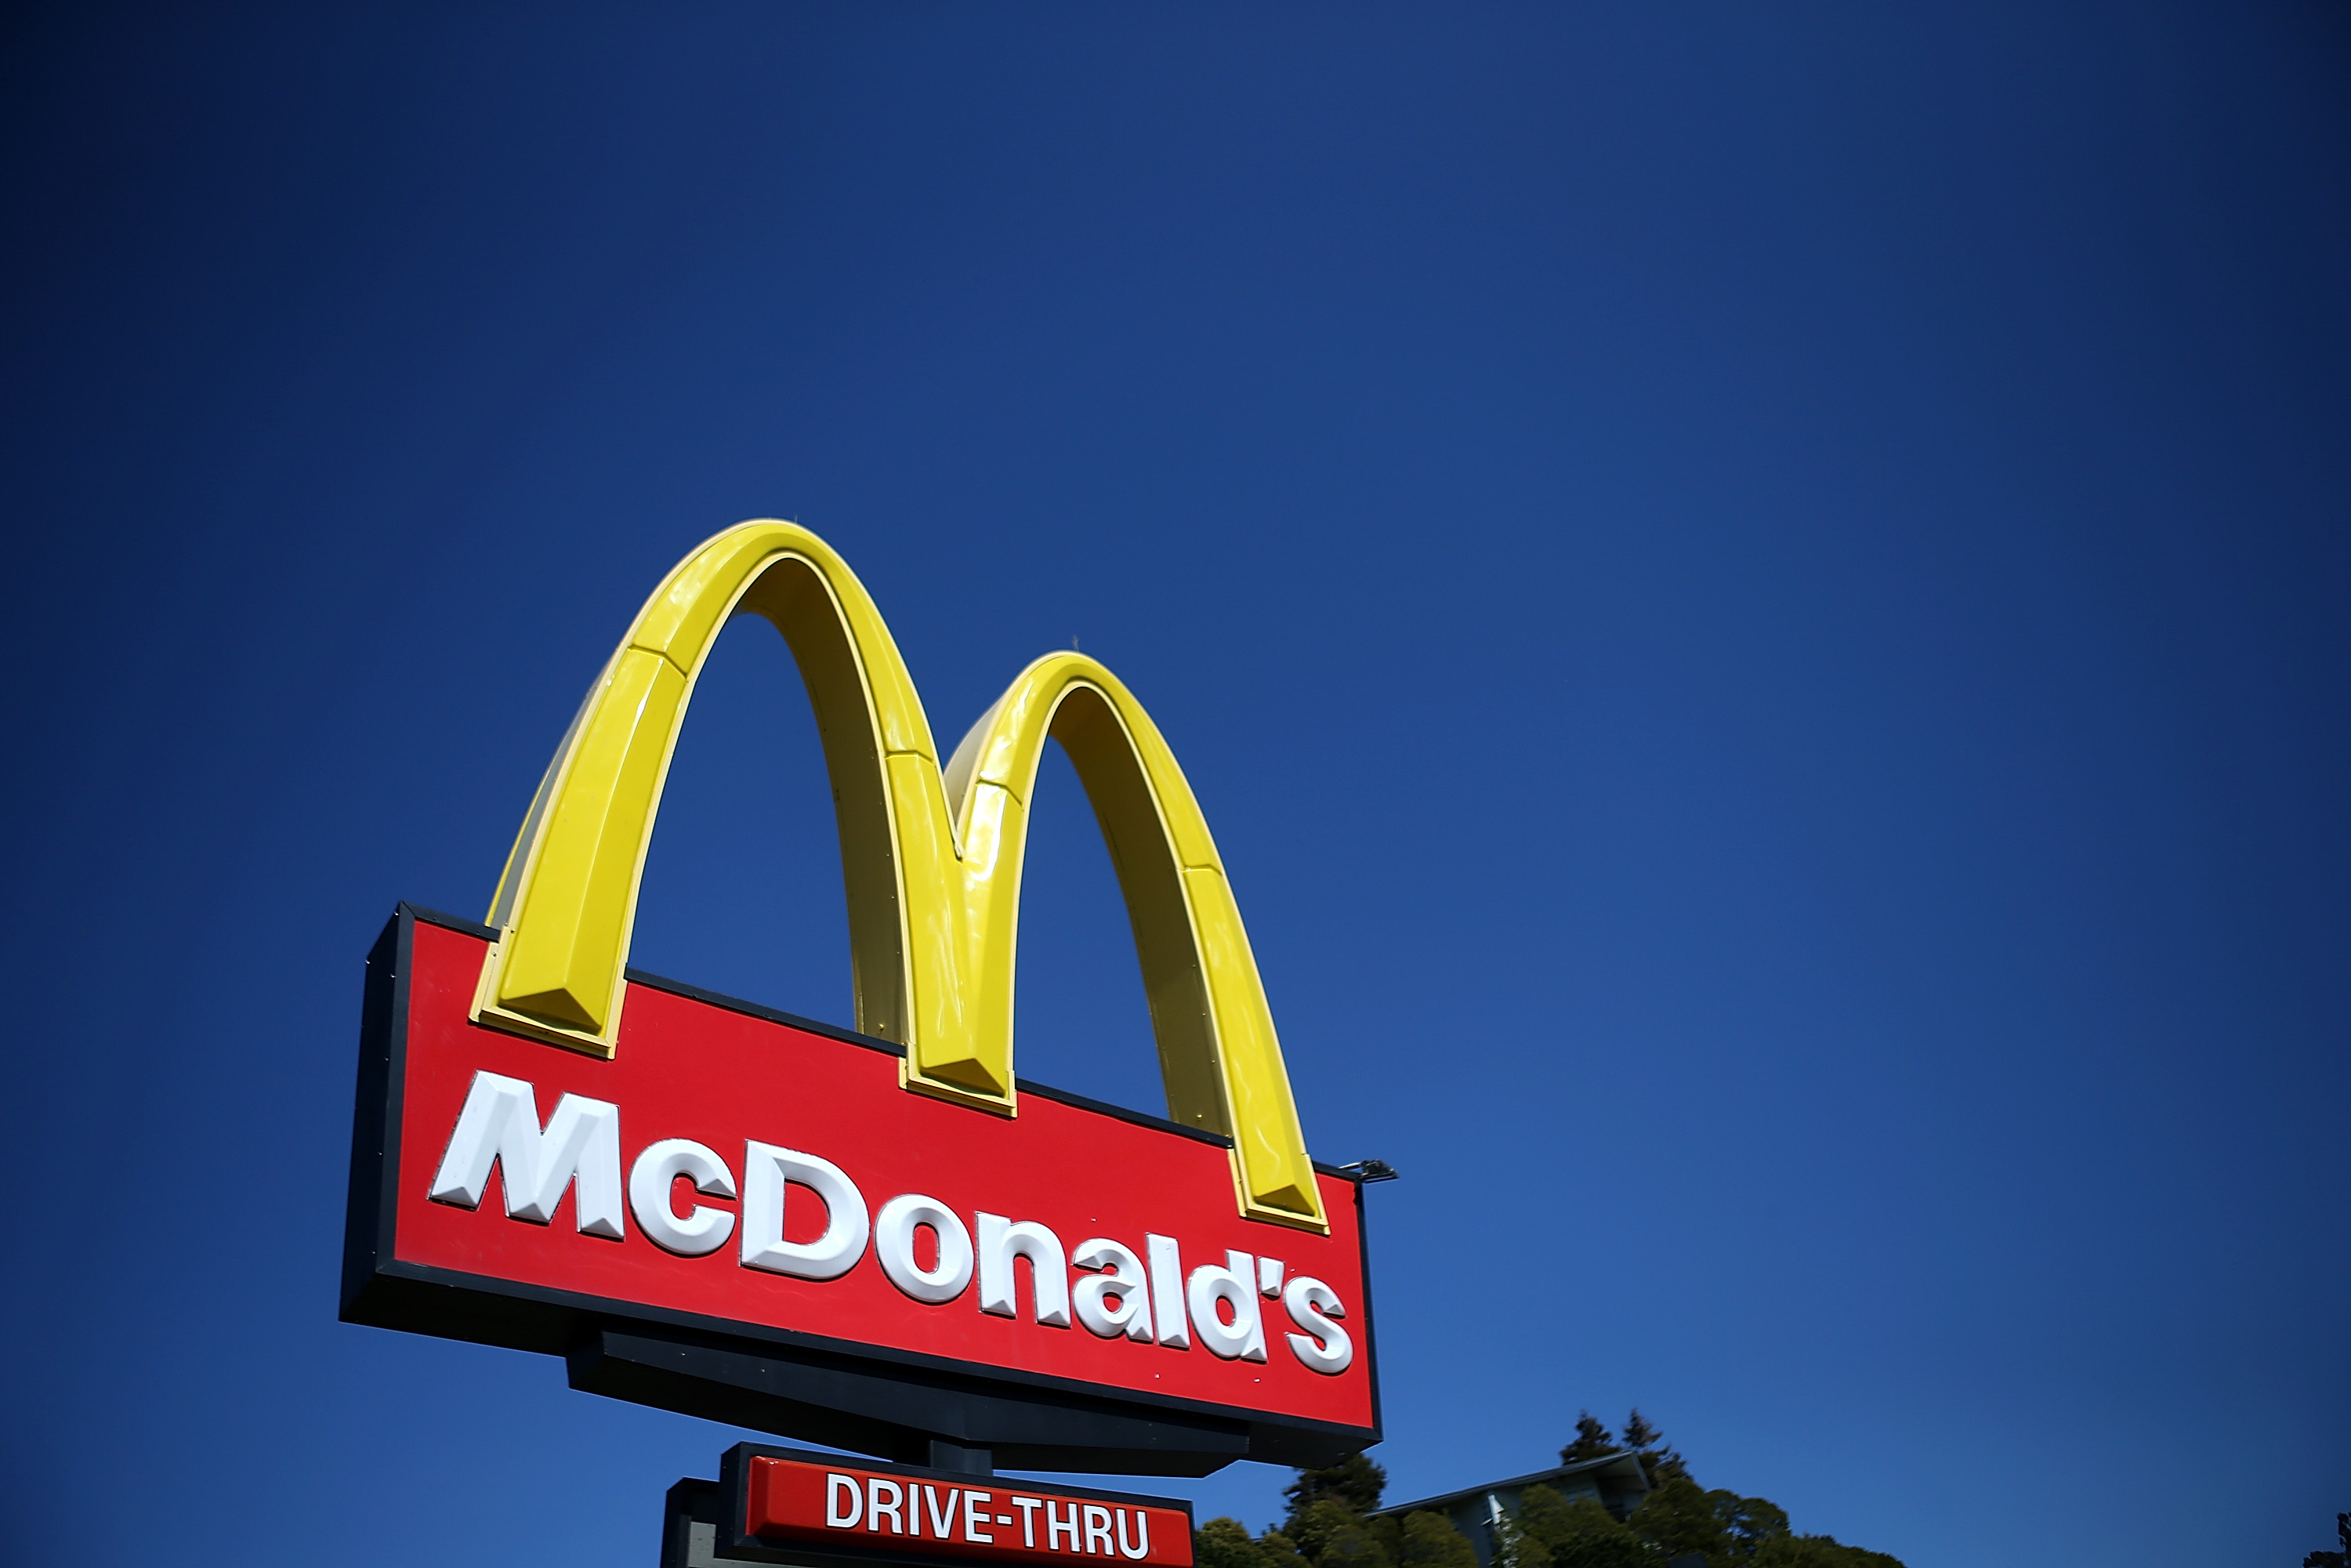 A McDonald's restaurant on March 12, 2013 in Mill Valley, California.